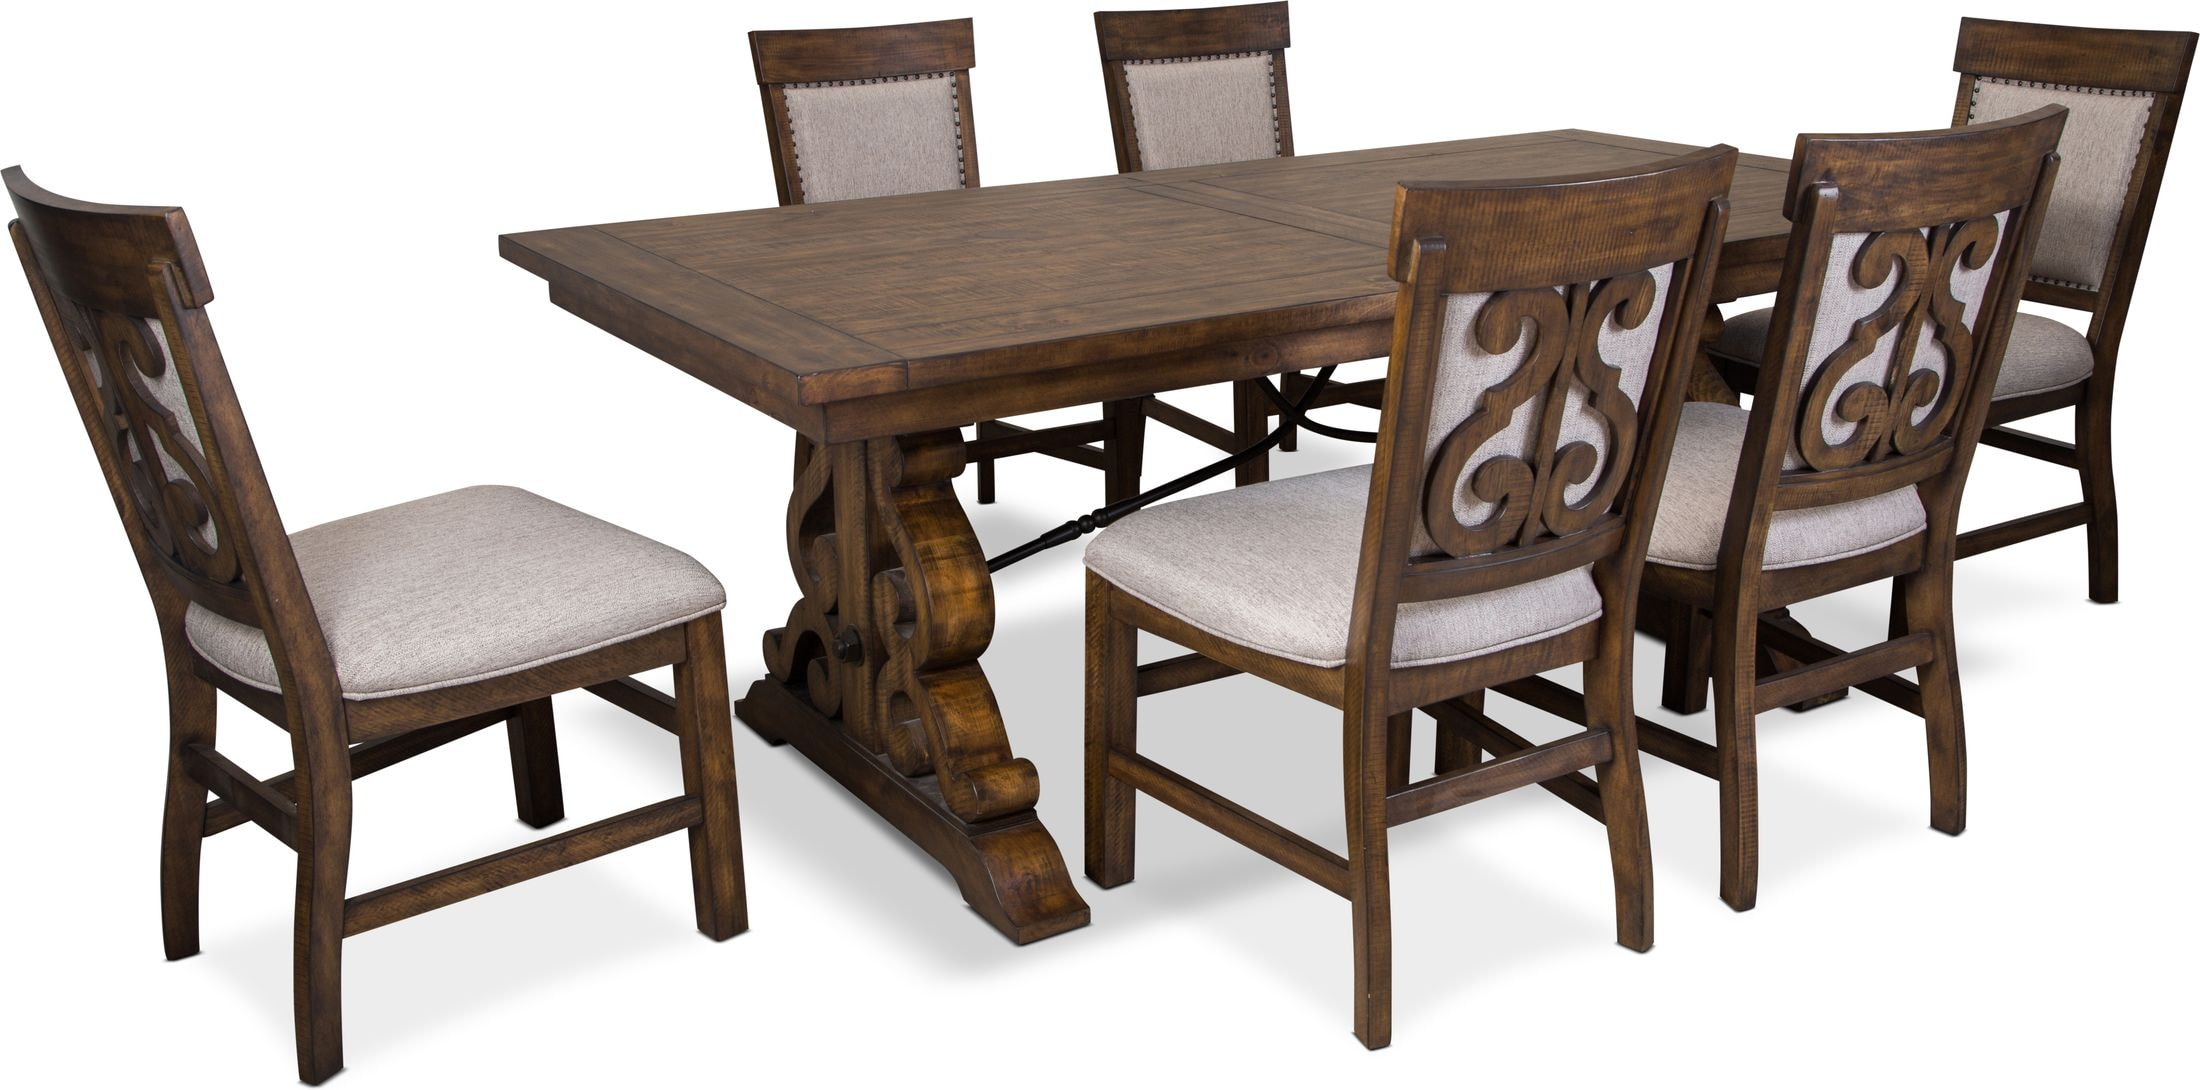 Dining Room Furniture - Charthouse Rectangular Dining Table and 6 Upholstered Side Chairs